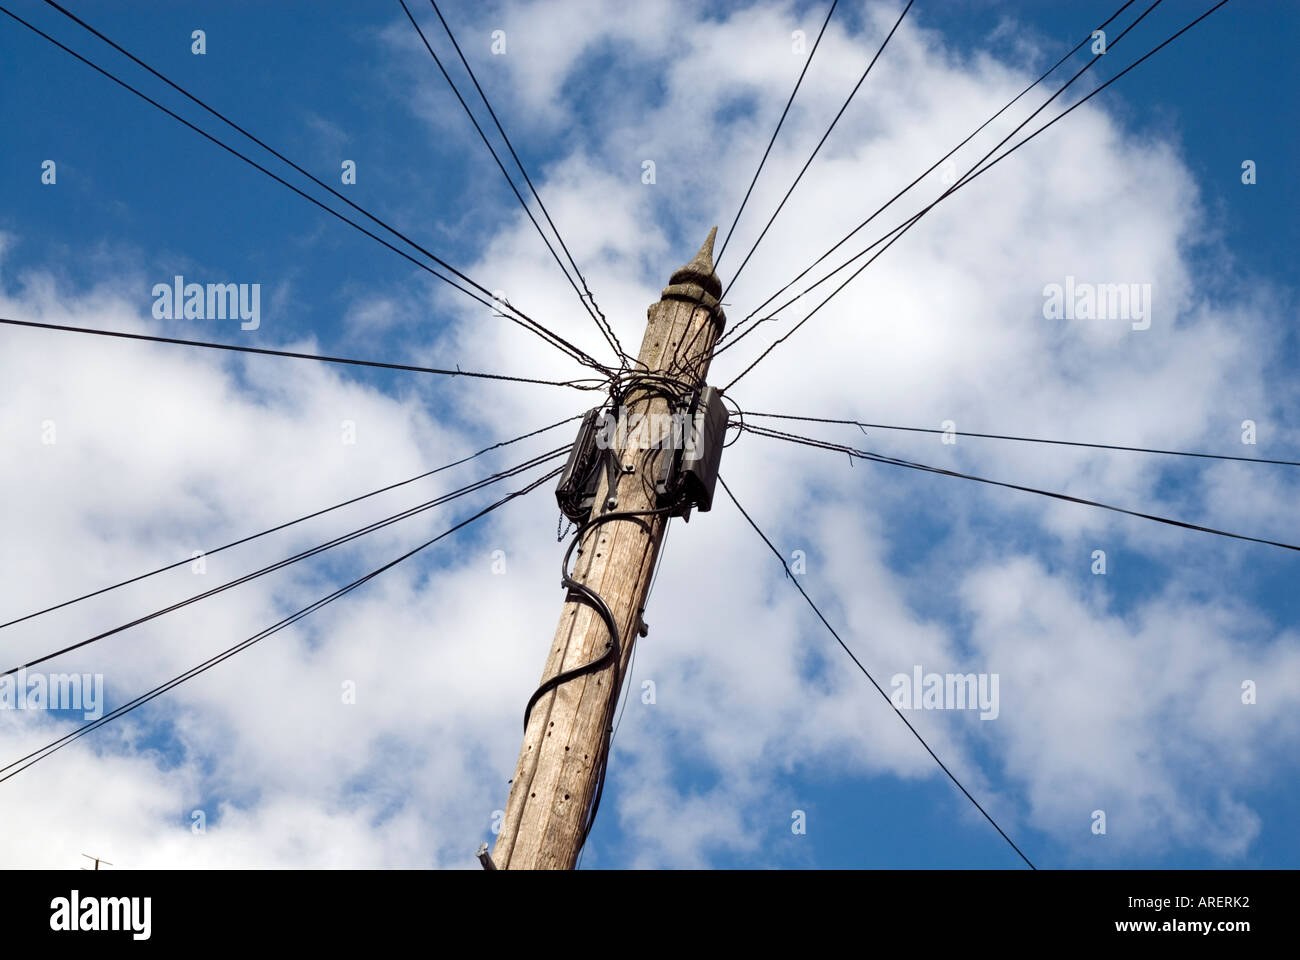 British Phone Wires Stock Photos & British Phone Wires Stock Images ...